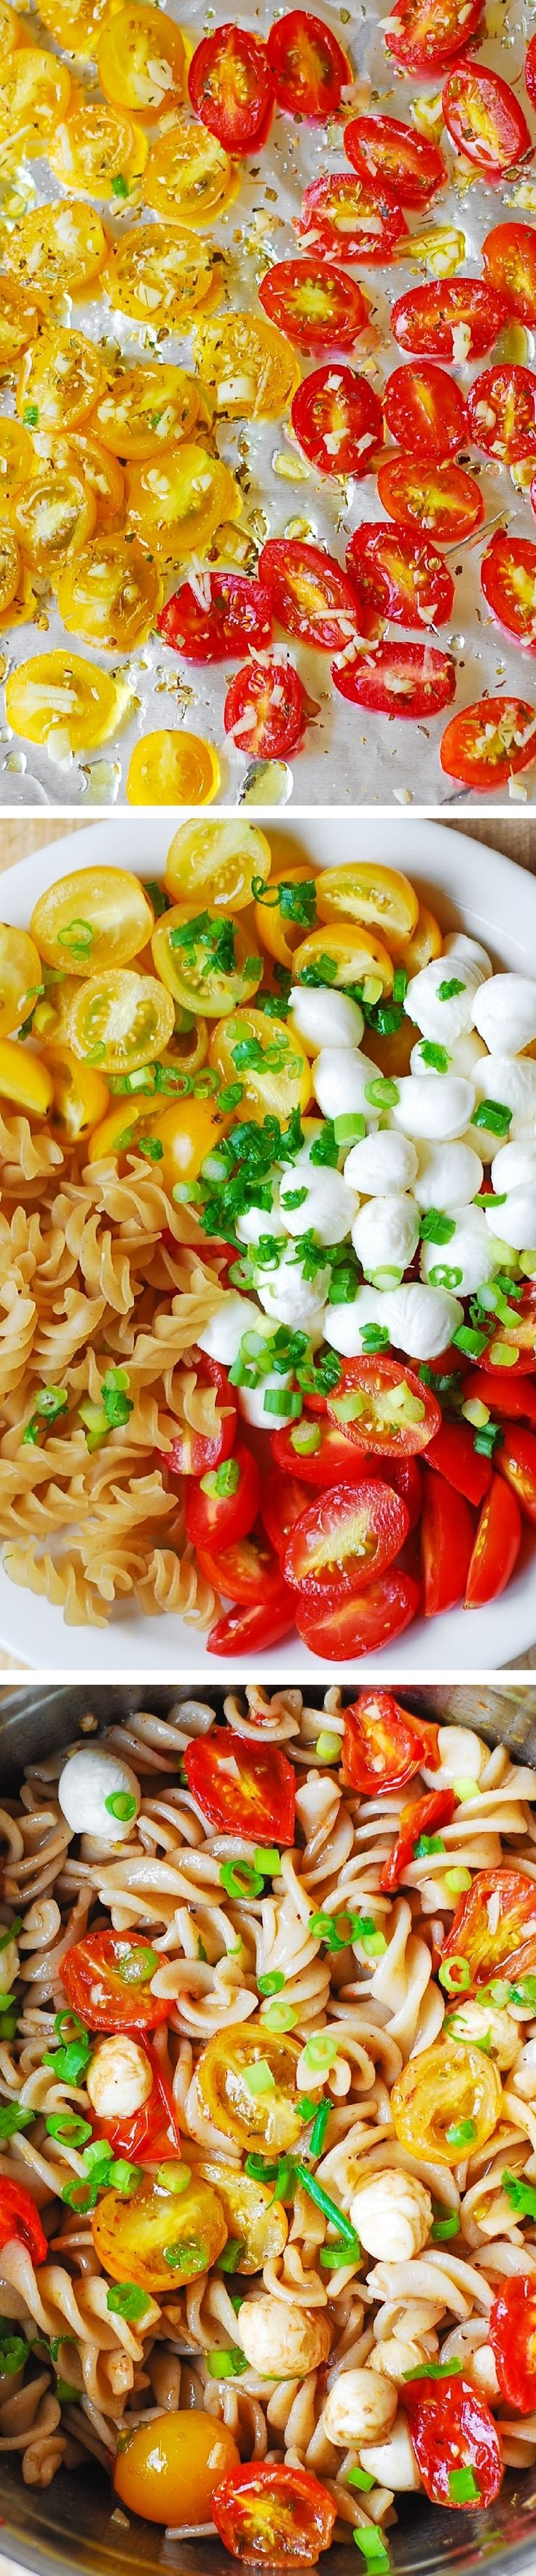 Pasta Salad with Roasted Tomatoes and Mozzarella - healthy, light, vegetarian side dish! For gluten free, use gf pasta.  Perfect for Summer cookouts, picnics! #BHG #sponsored